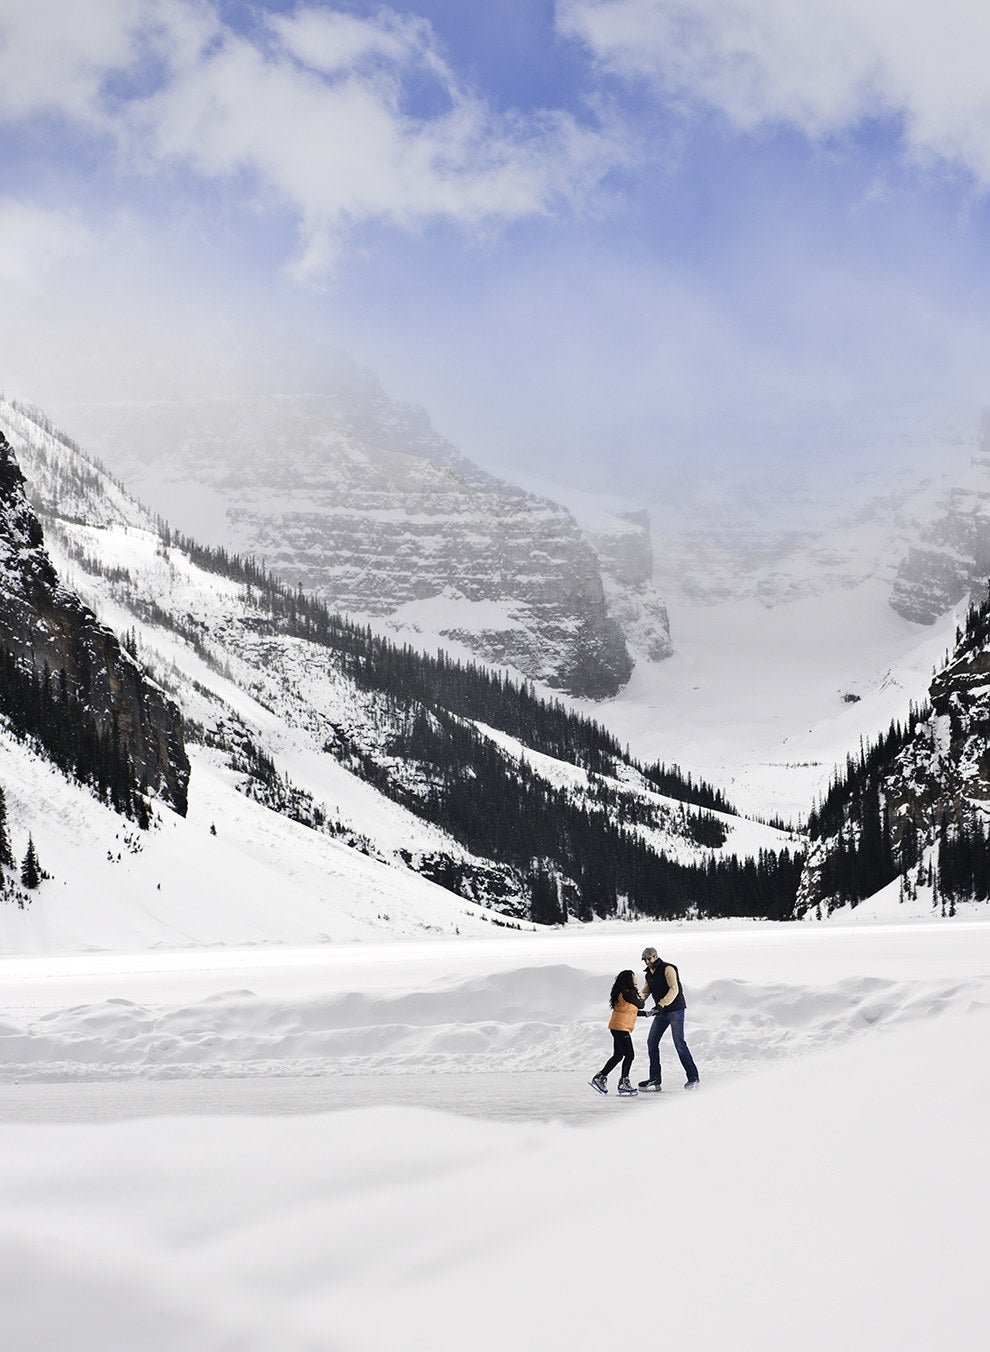 If you think Lake Louise is beautiful in the summertime, you should see the glacial lake when it freezes over in the winter!